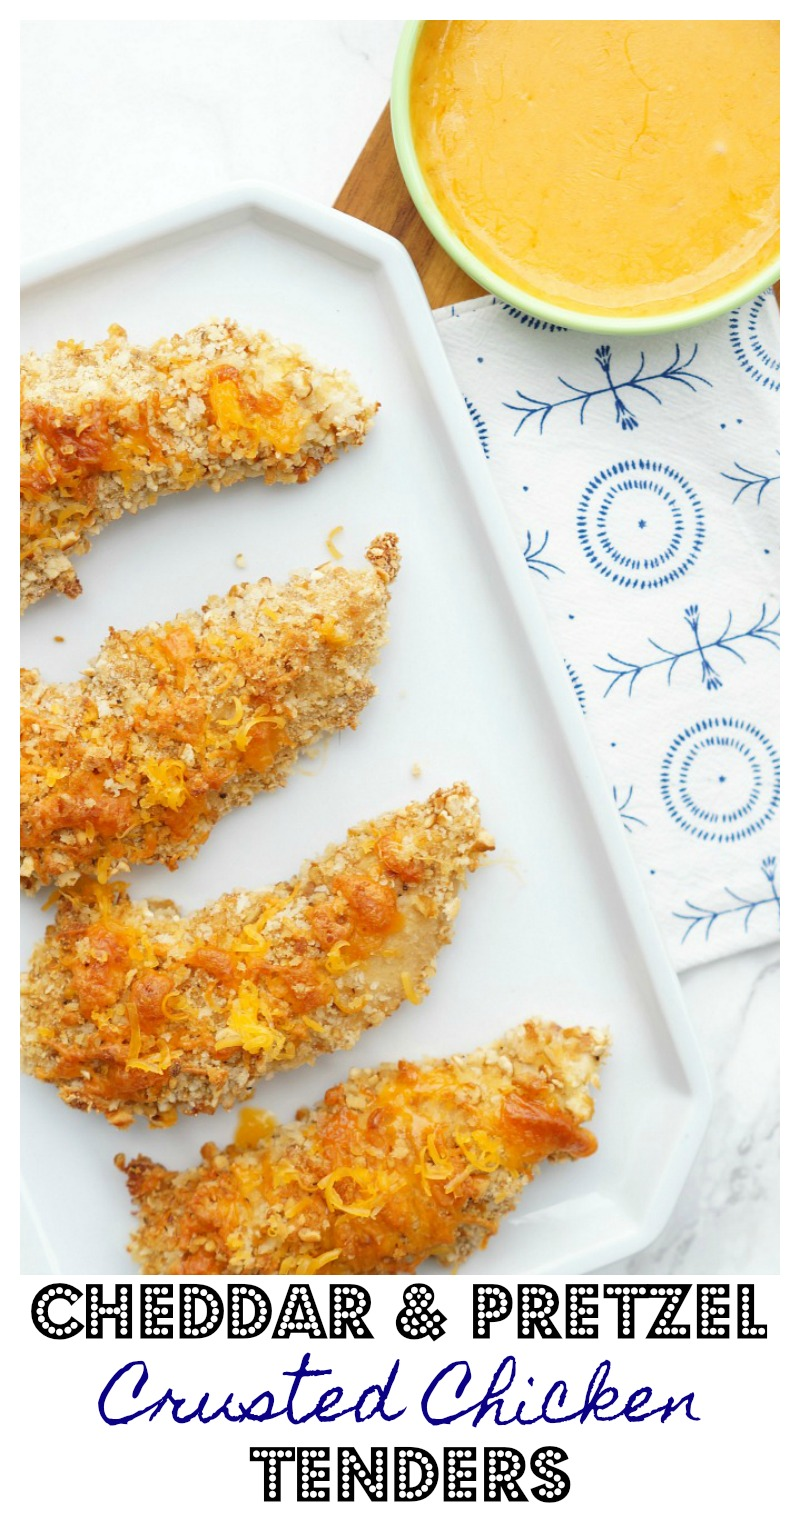 Cheddar and Pretzel Crusted Chicken Tenders